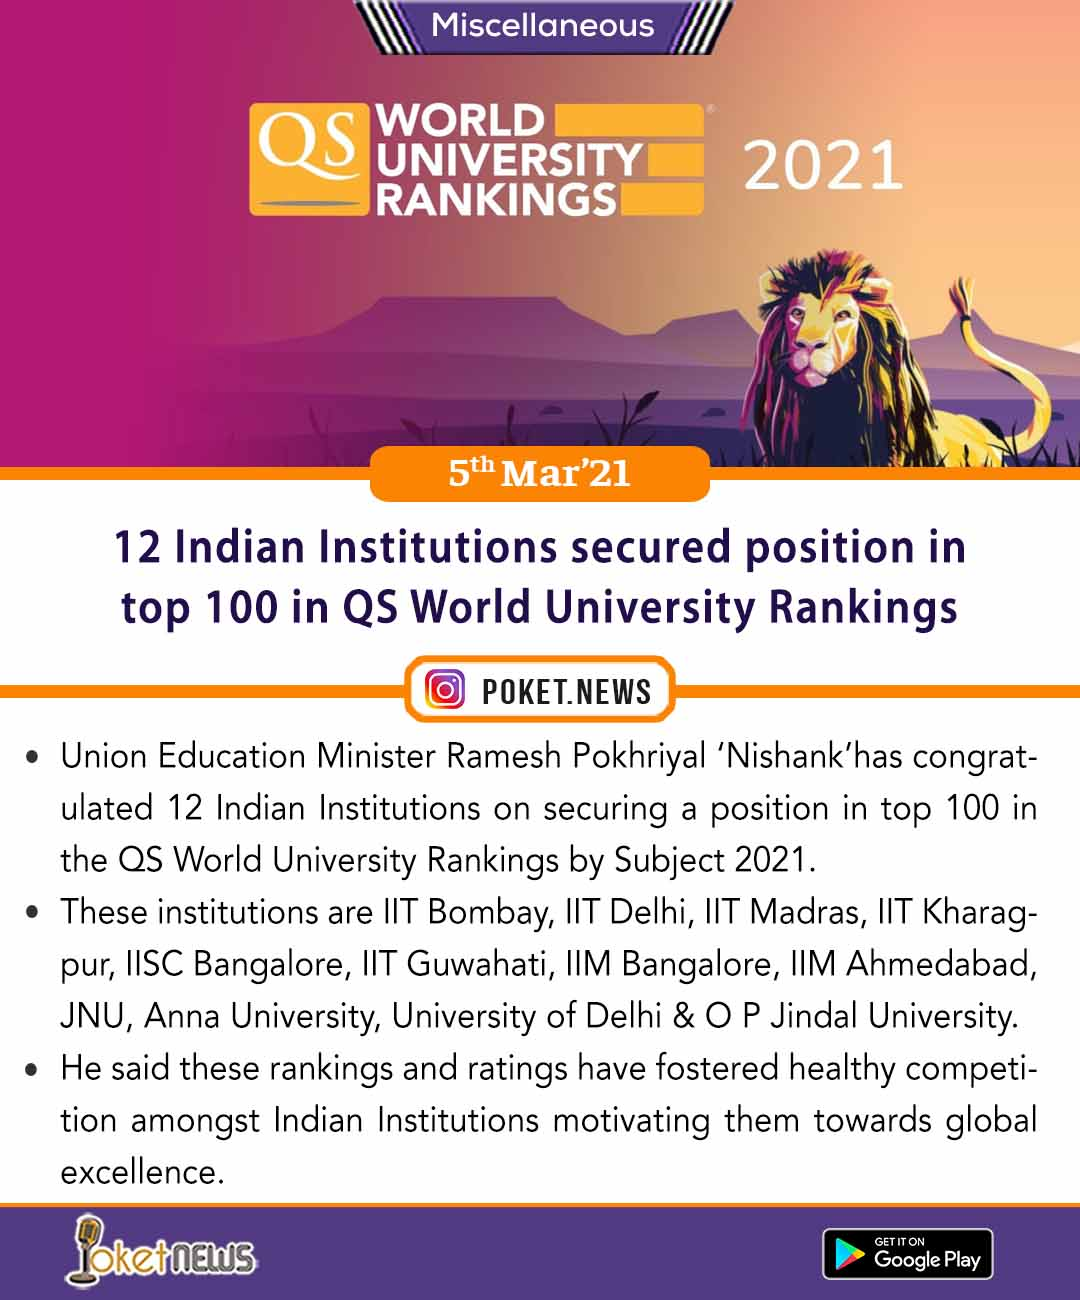 12 Indian Institutions secured position in top 100 in QS World University Rankings